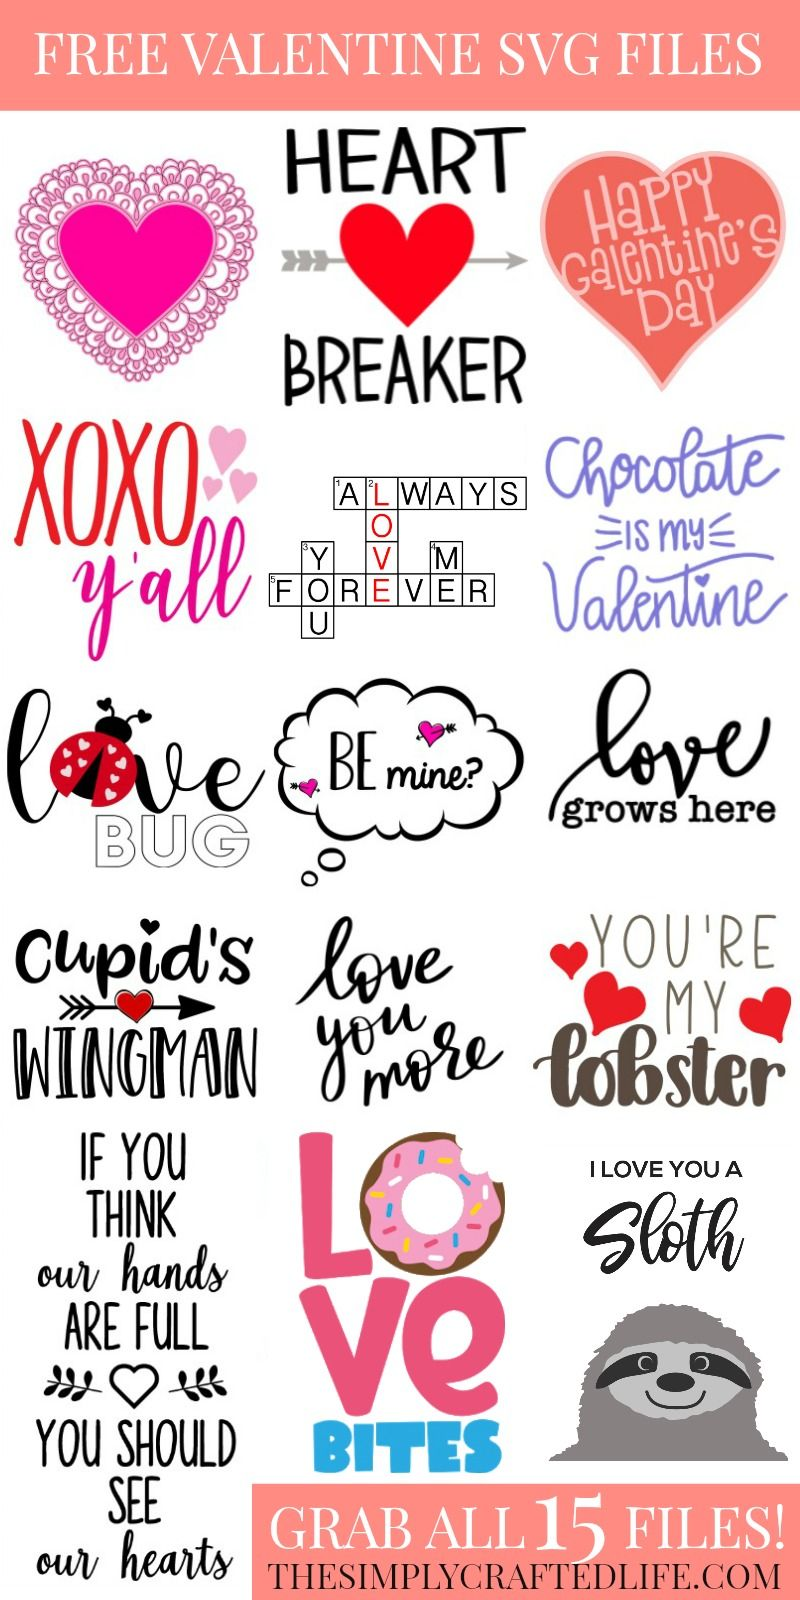 15 Free Valentine's Day SVG Cut Files to Download is part of Valentines svg - If you are looking for a free Valentine's Day SVG, you've hit the jackpot  See the post below for 15 free valentine's day svgs for you to download!